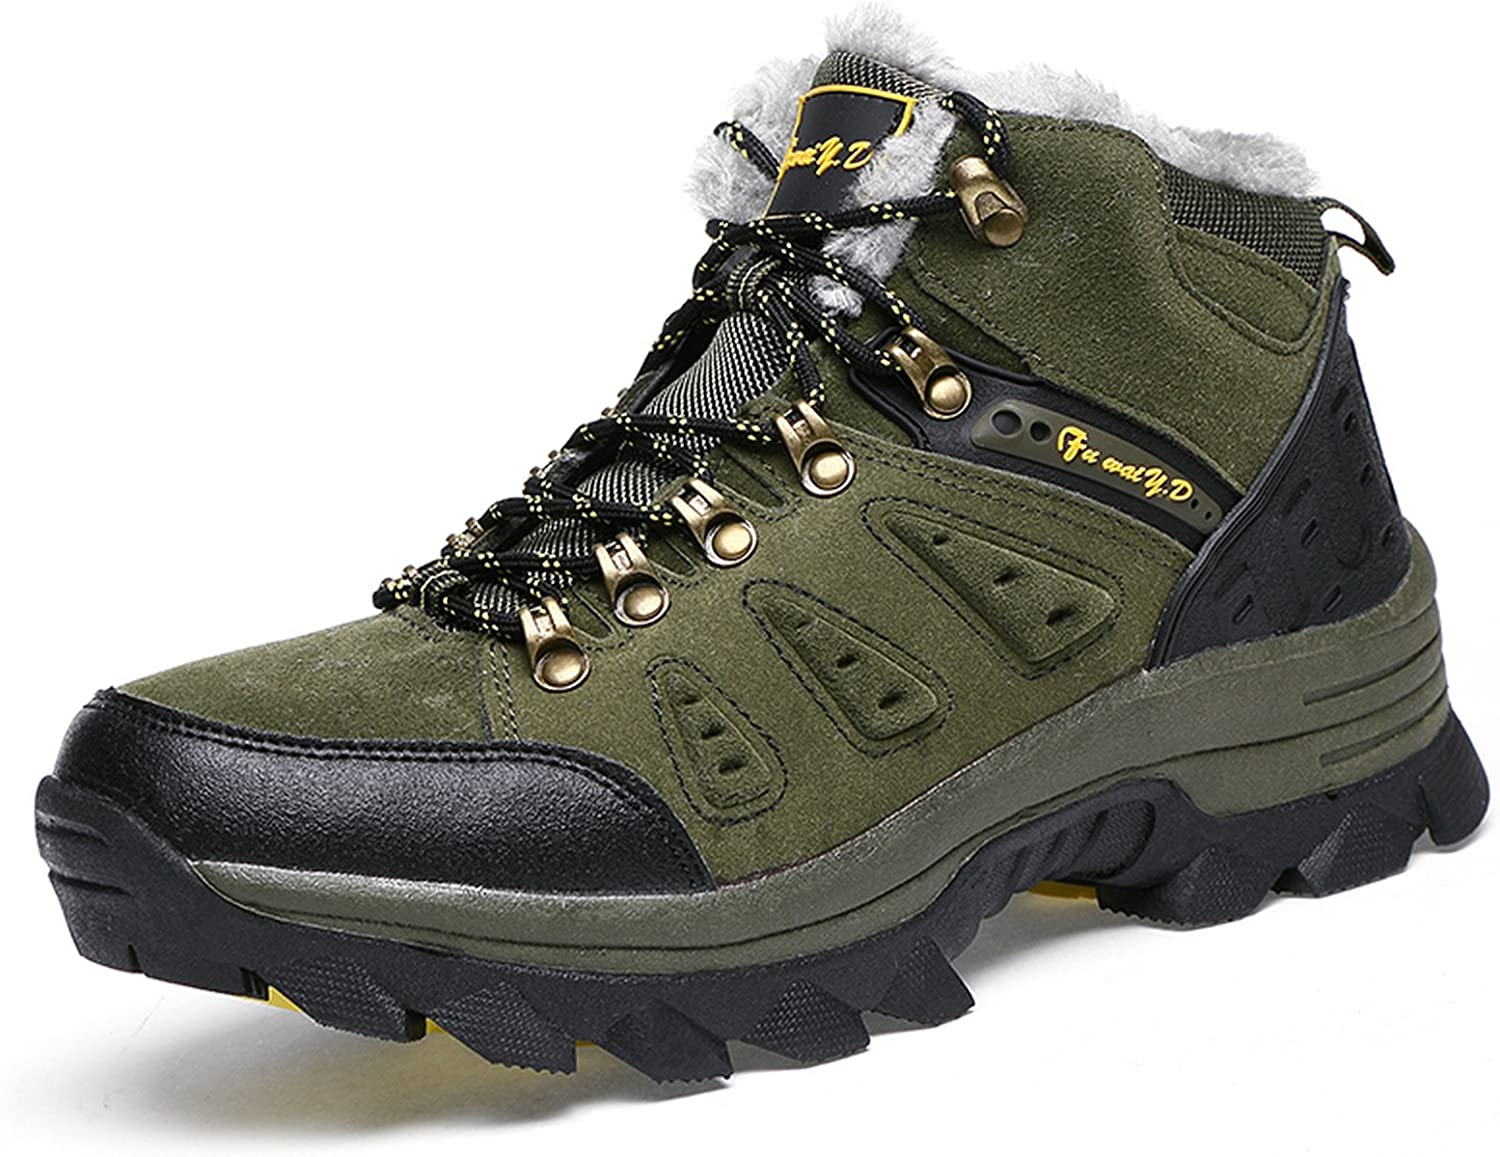 Oneone Men's Hiking Boots with Fur